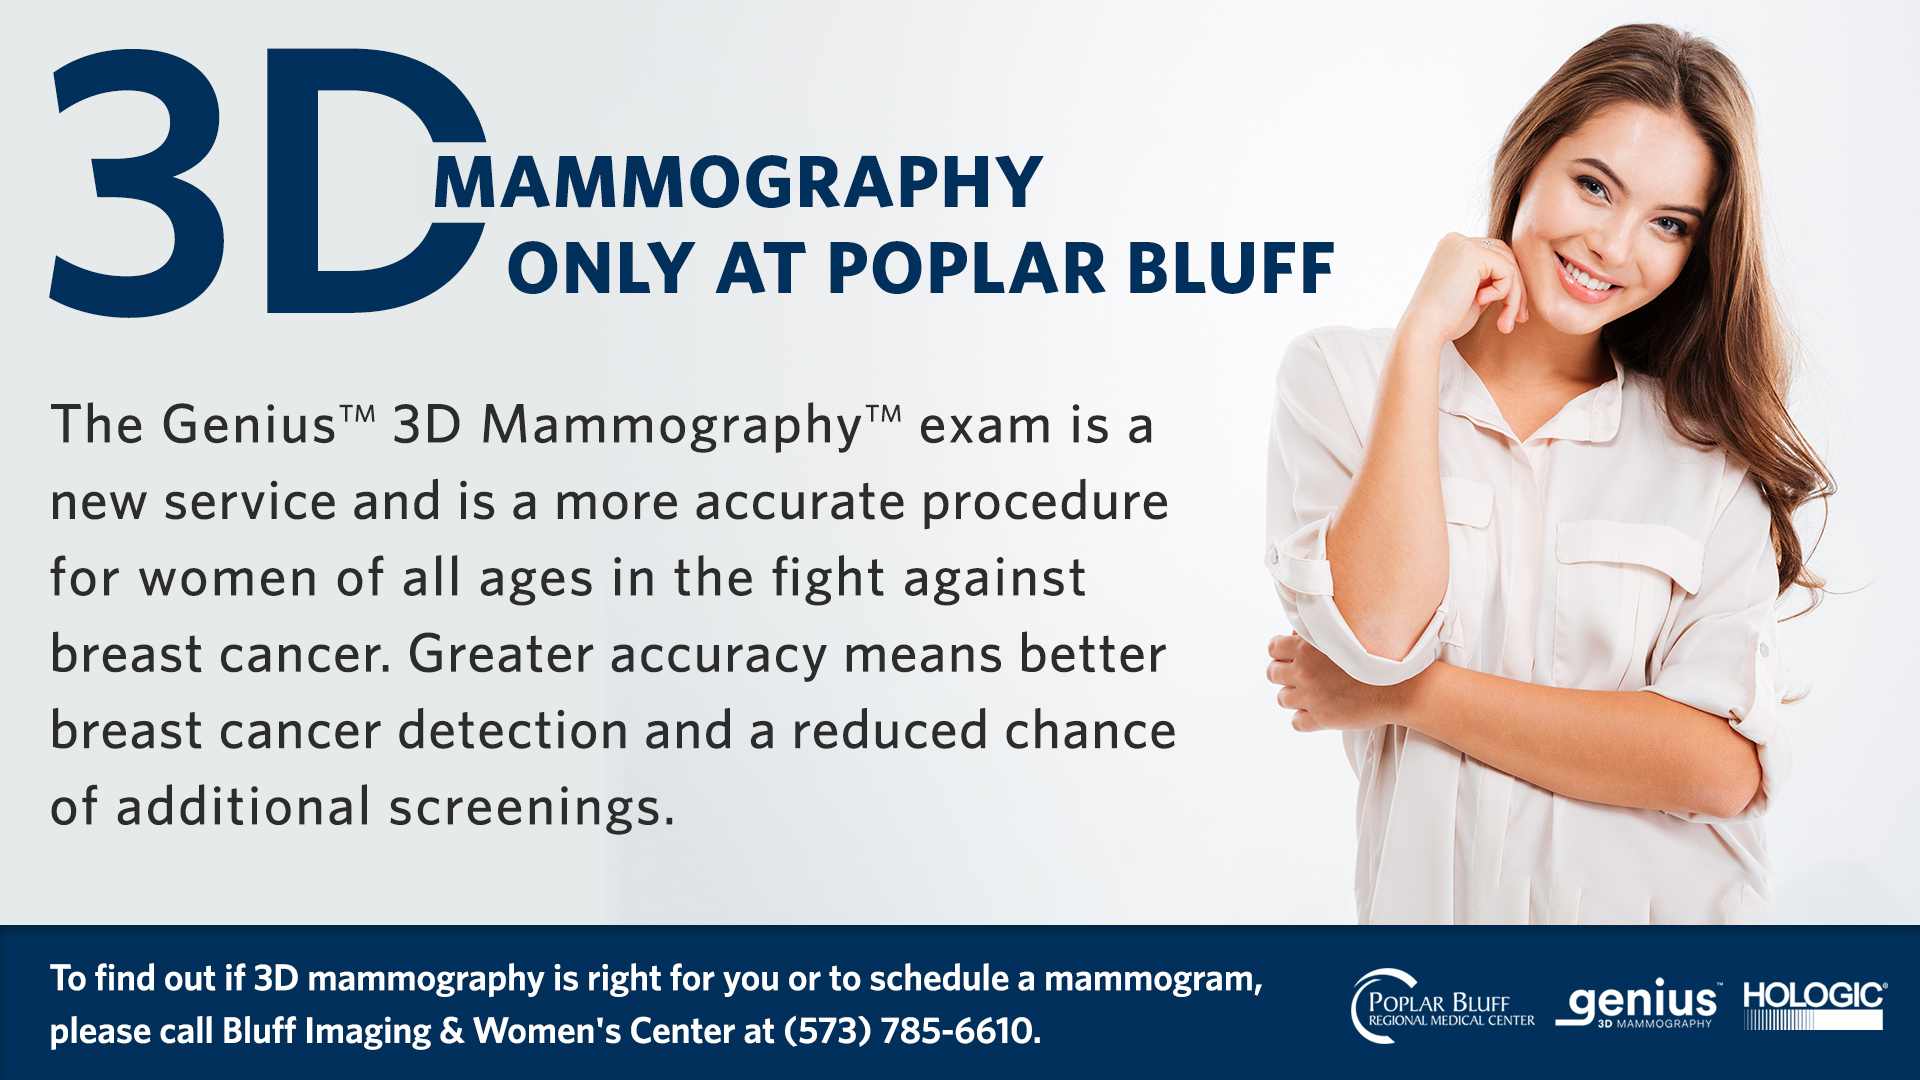 POPLA_MO01_3DMammography_June2017.jpg